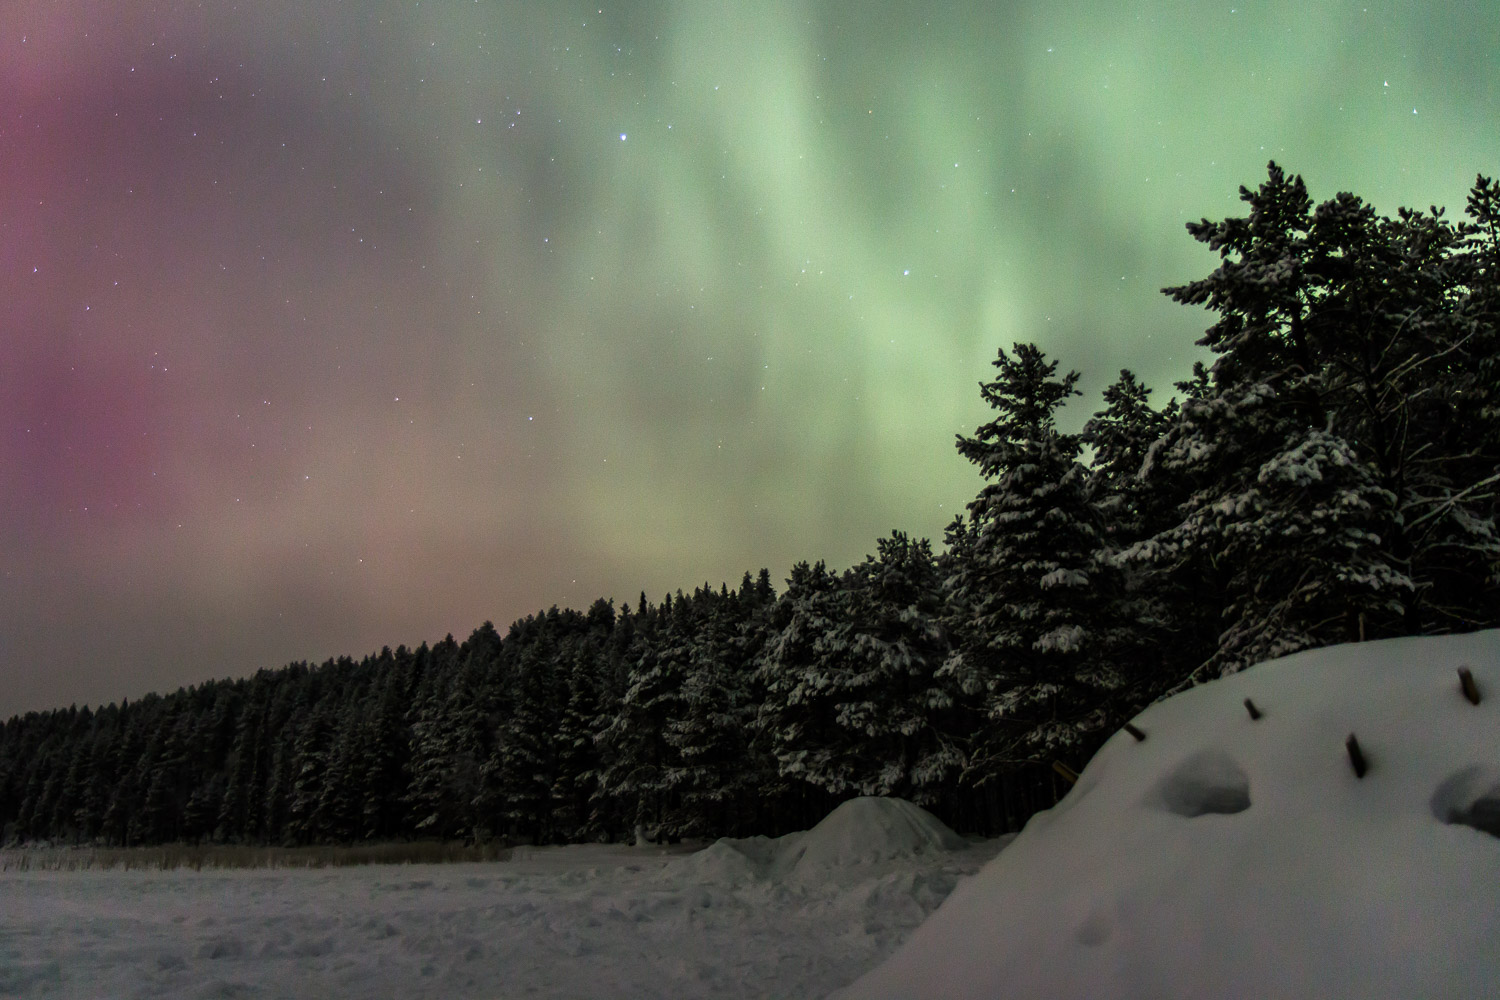 Northern lights or aurora borealis over Oulanka national park